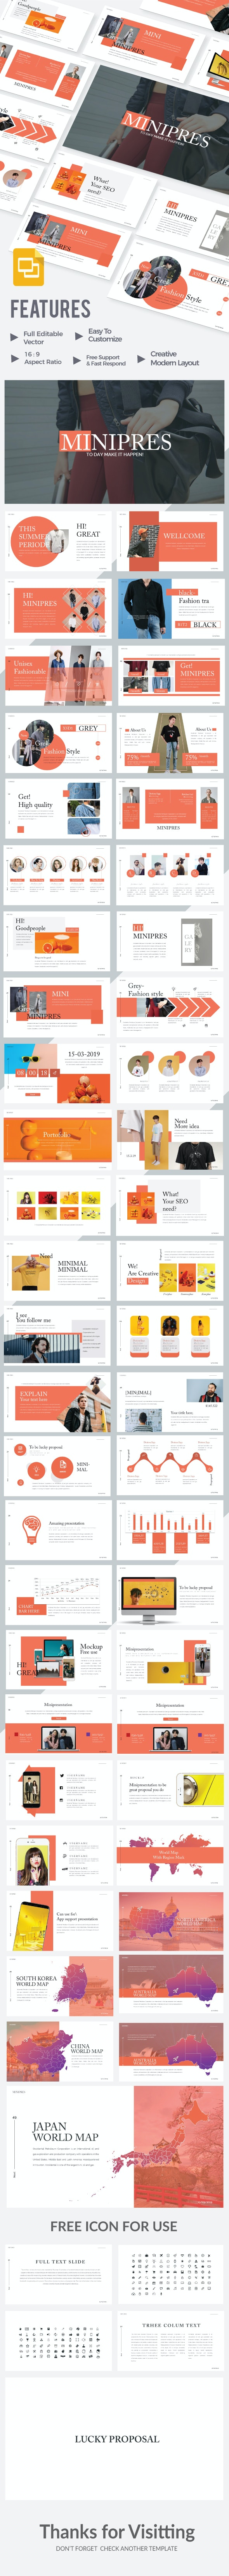 Minipres  - Google Slide Presentation Template - Google Slides Presentation Templates